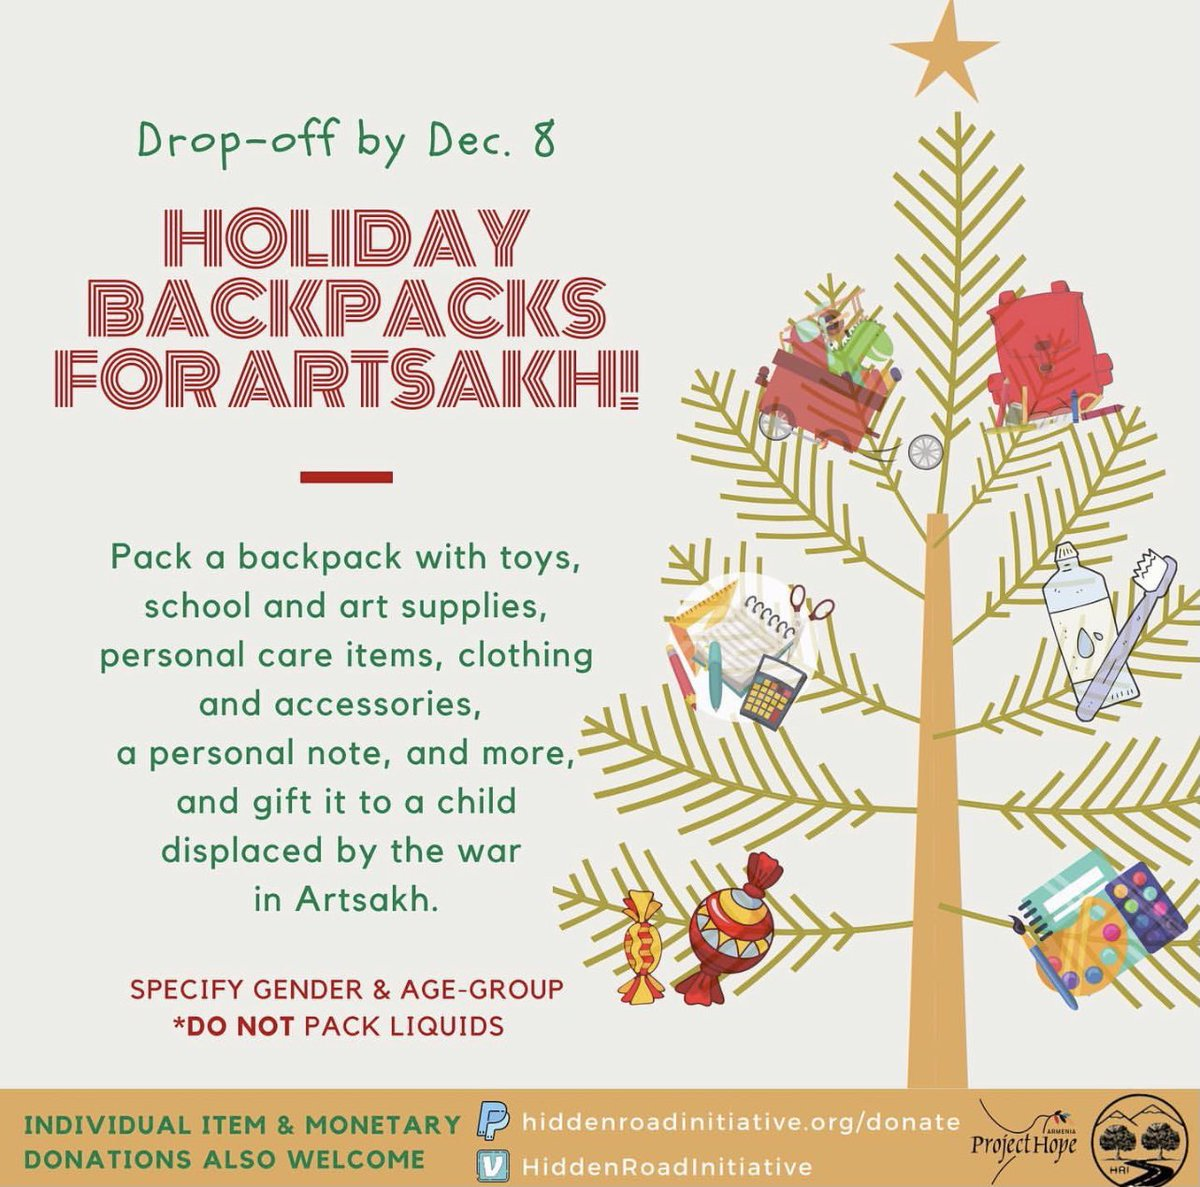 """Initiated by UCLA and UC Berkeley HRI chapters, """"Holiday Backpacks for Artsakh,"""" aims to bring holiday cheer to the children displaced by the war in Artsakh.  @HiddenRoadIn"""